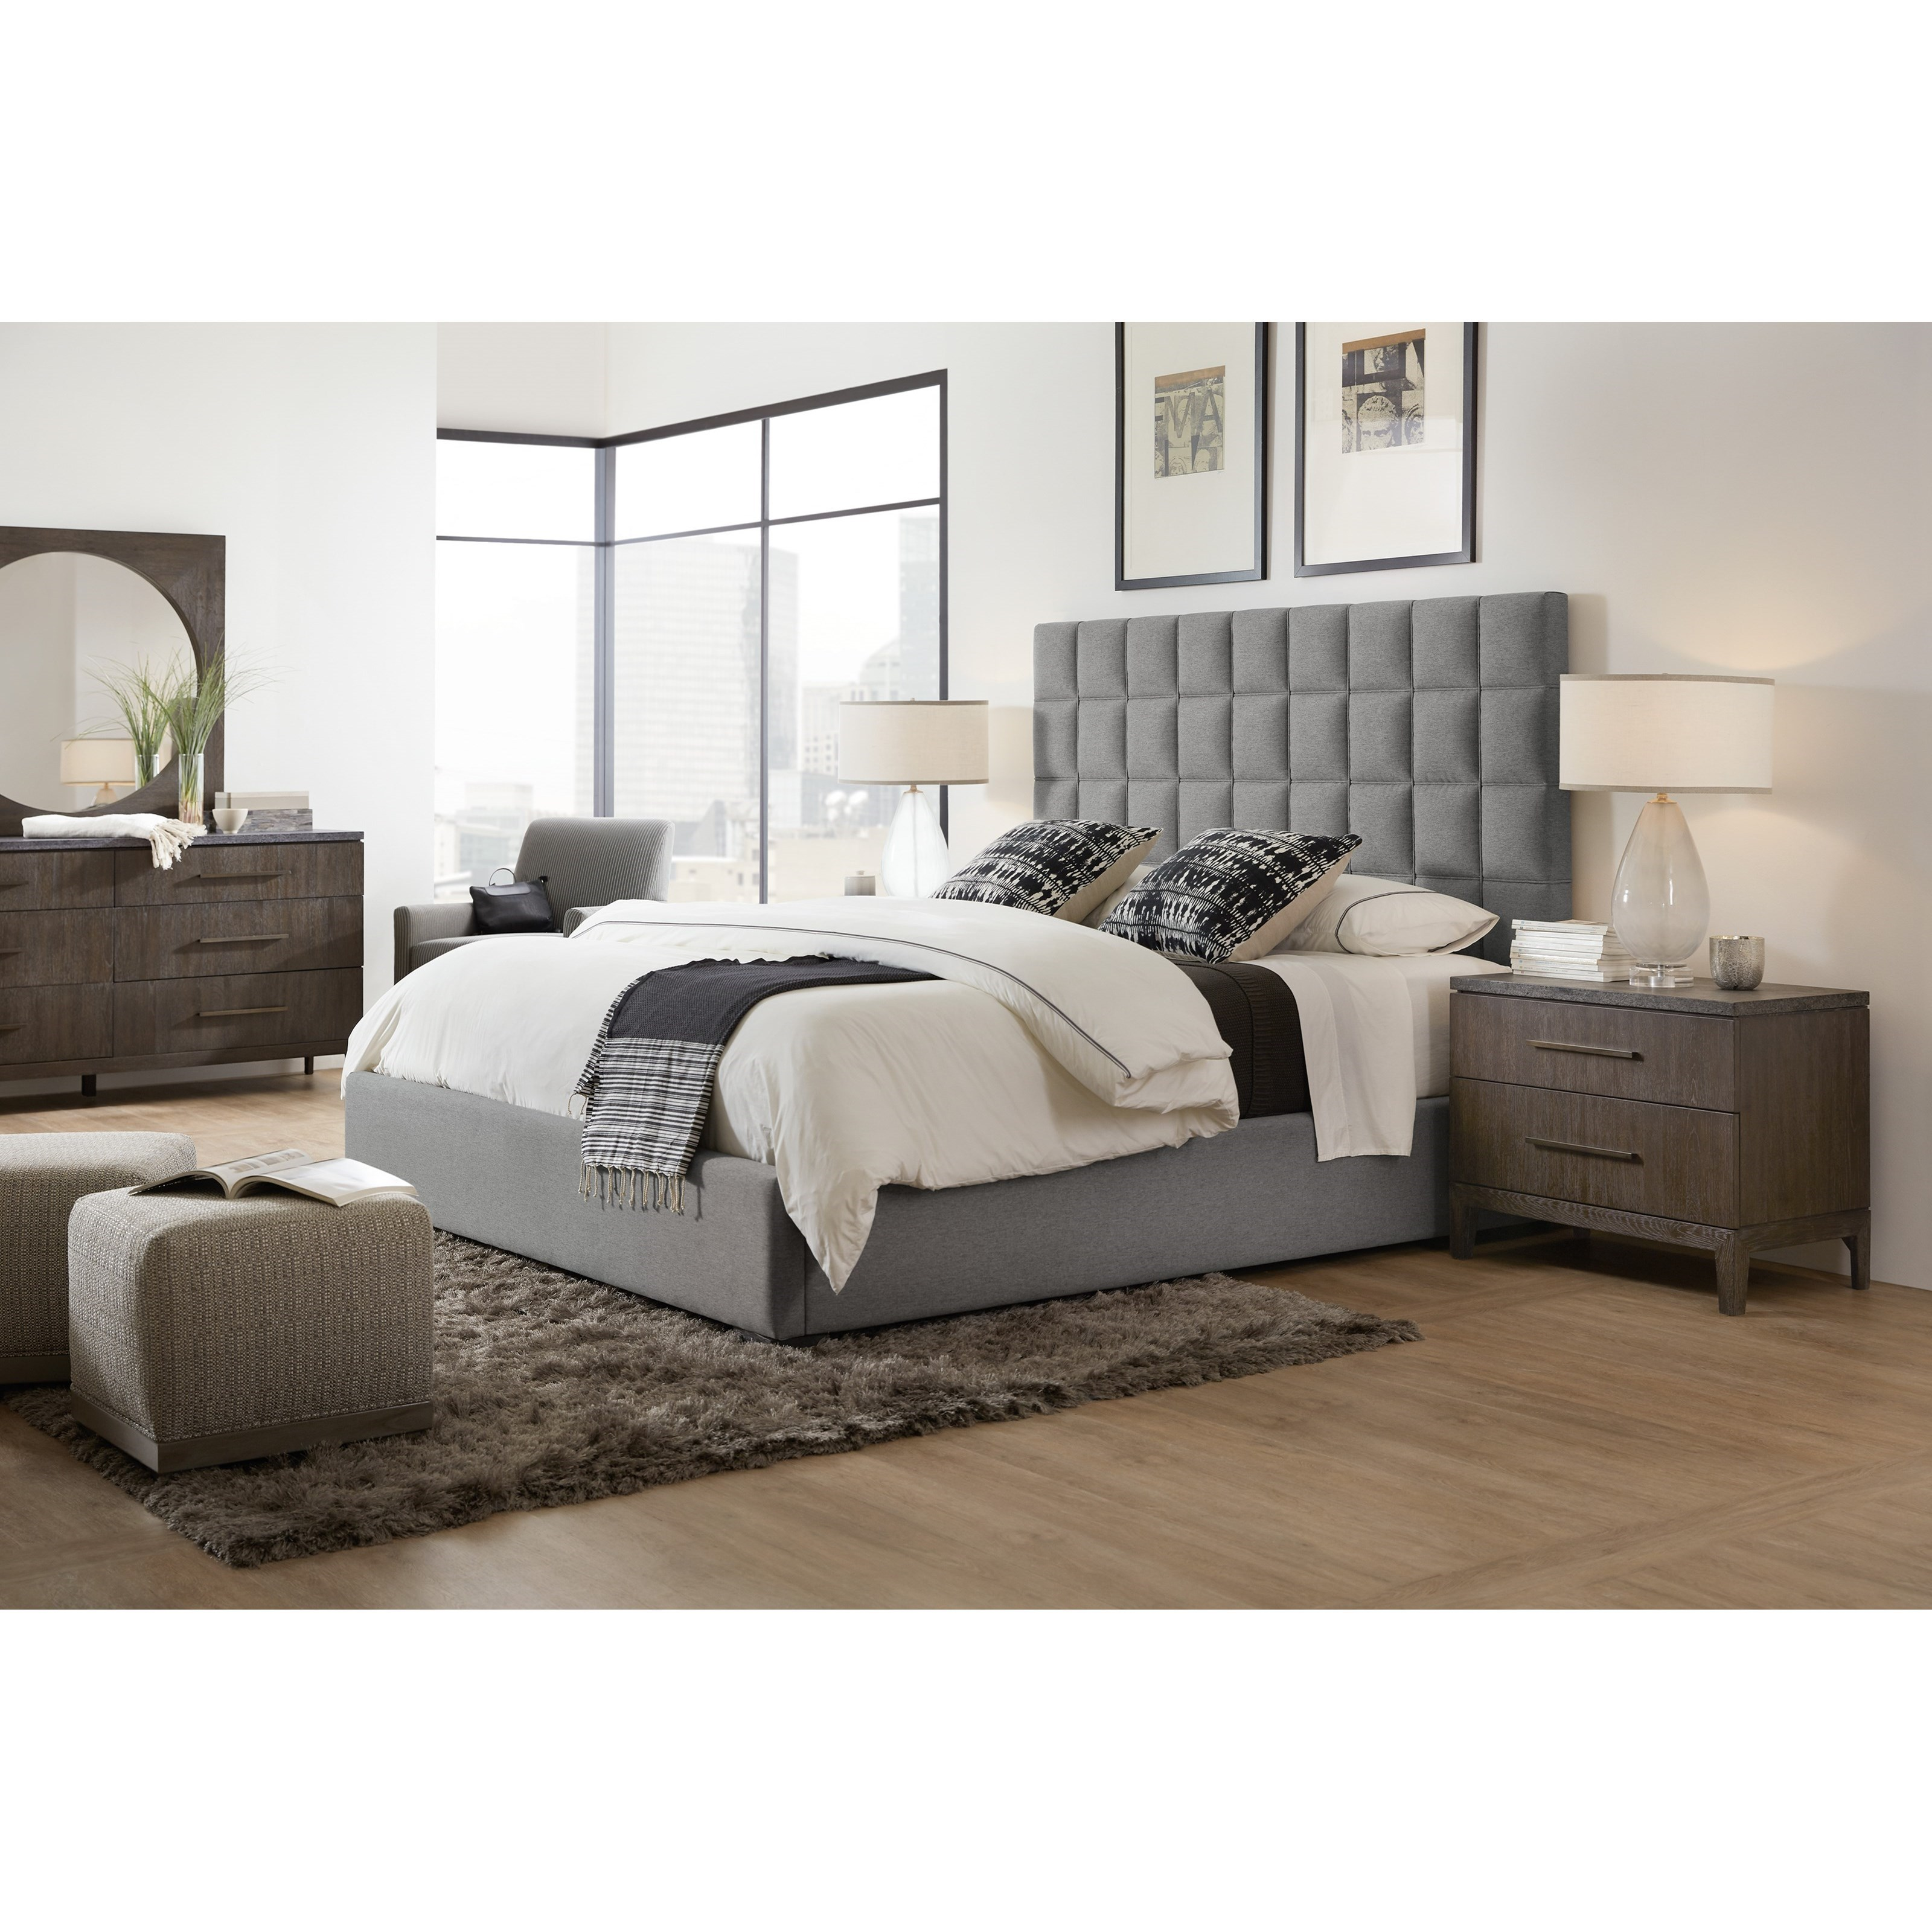 Hooker Furniture Miramar Aventura California King Bedroom Group